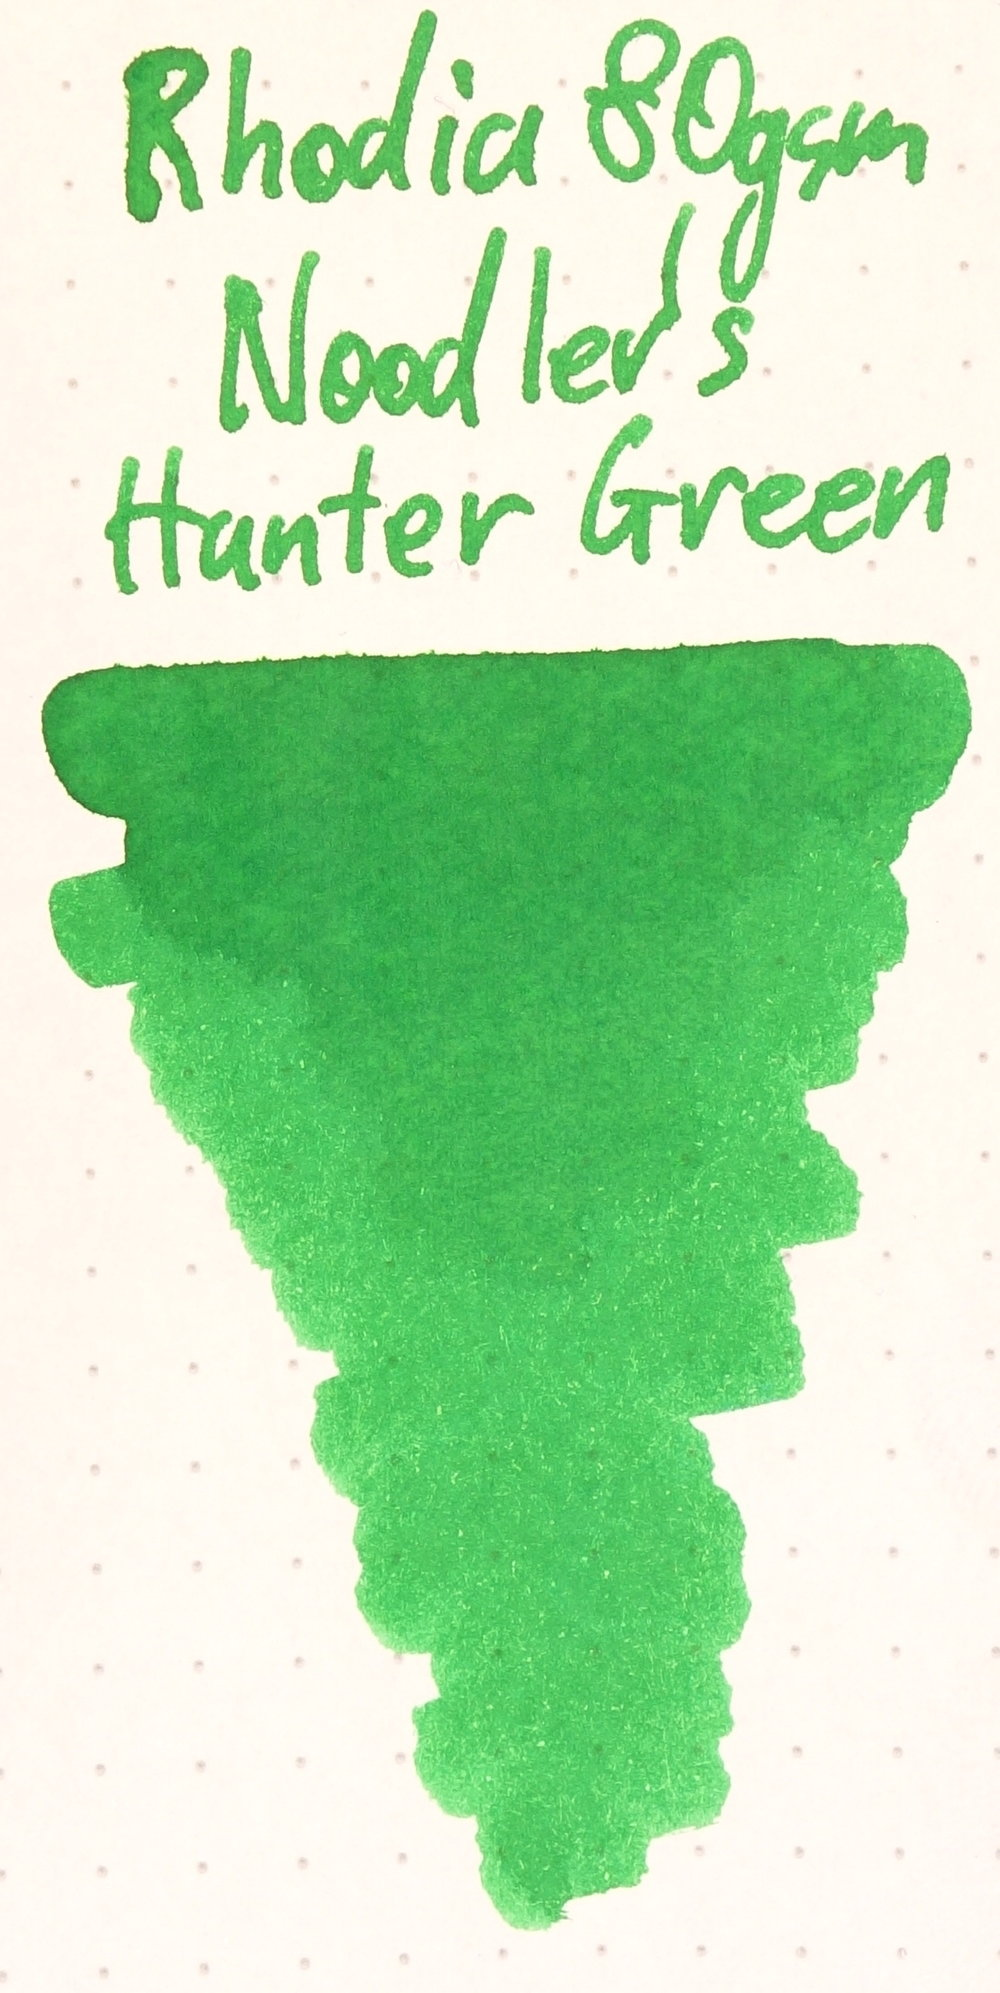 Noodler's Hunter Green Rhodia.JPG